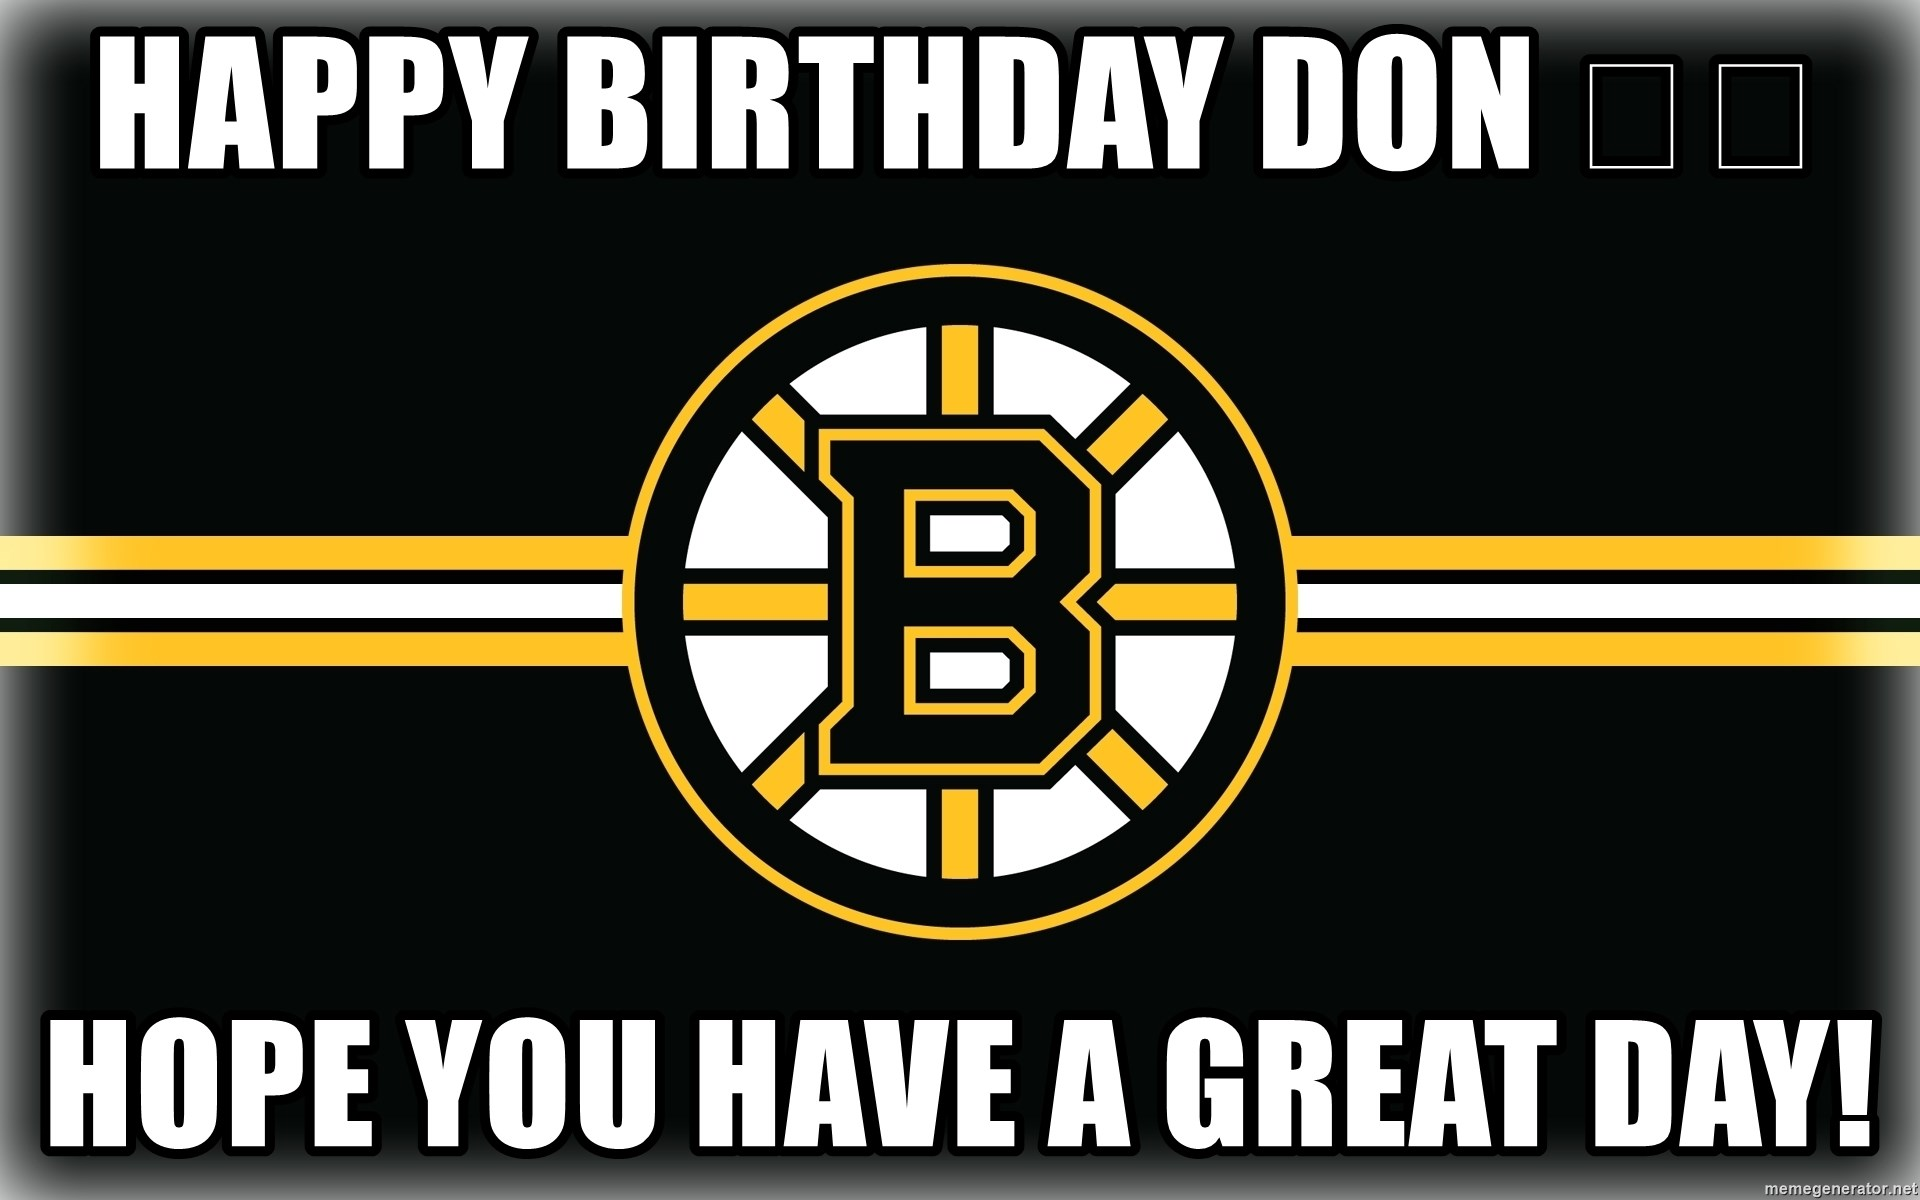 Fullsize Of Happy Birthday Don